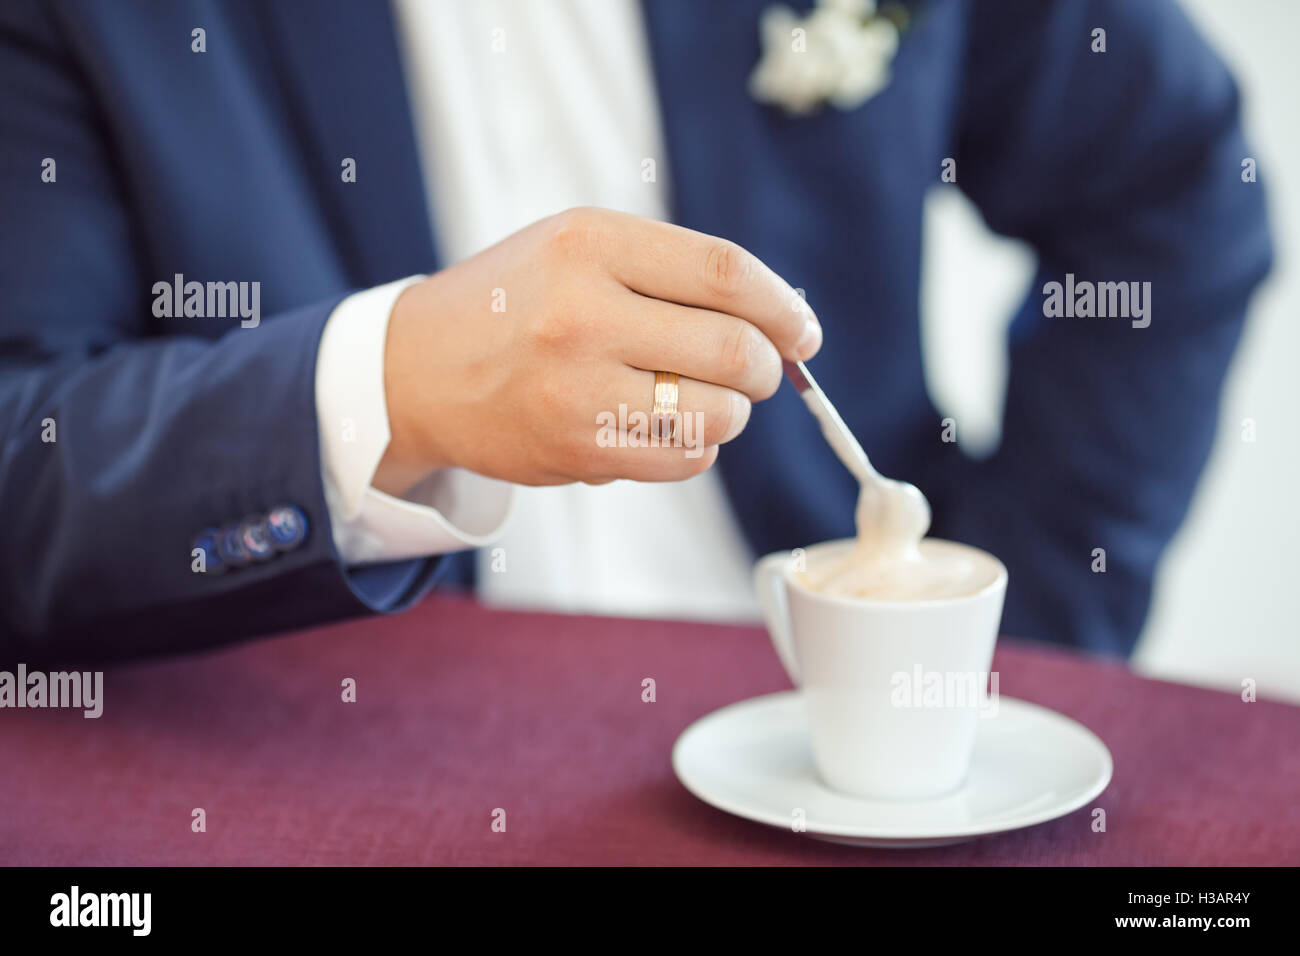 Man's hands and cup of coffee - Stock Image